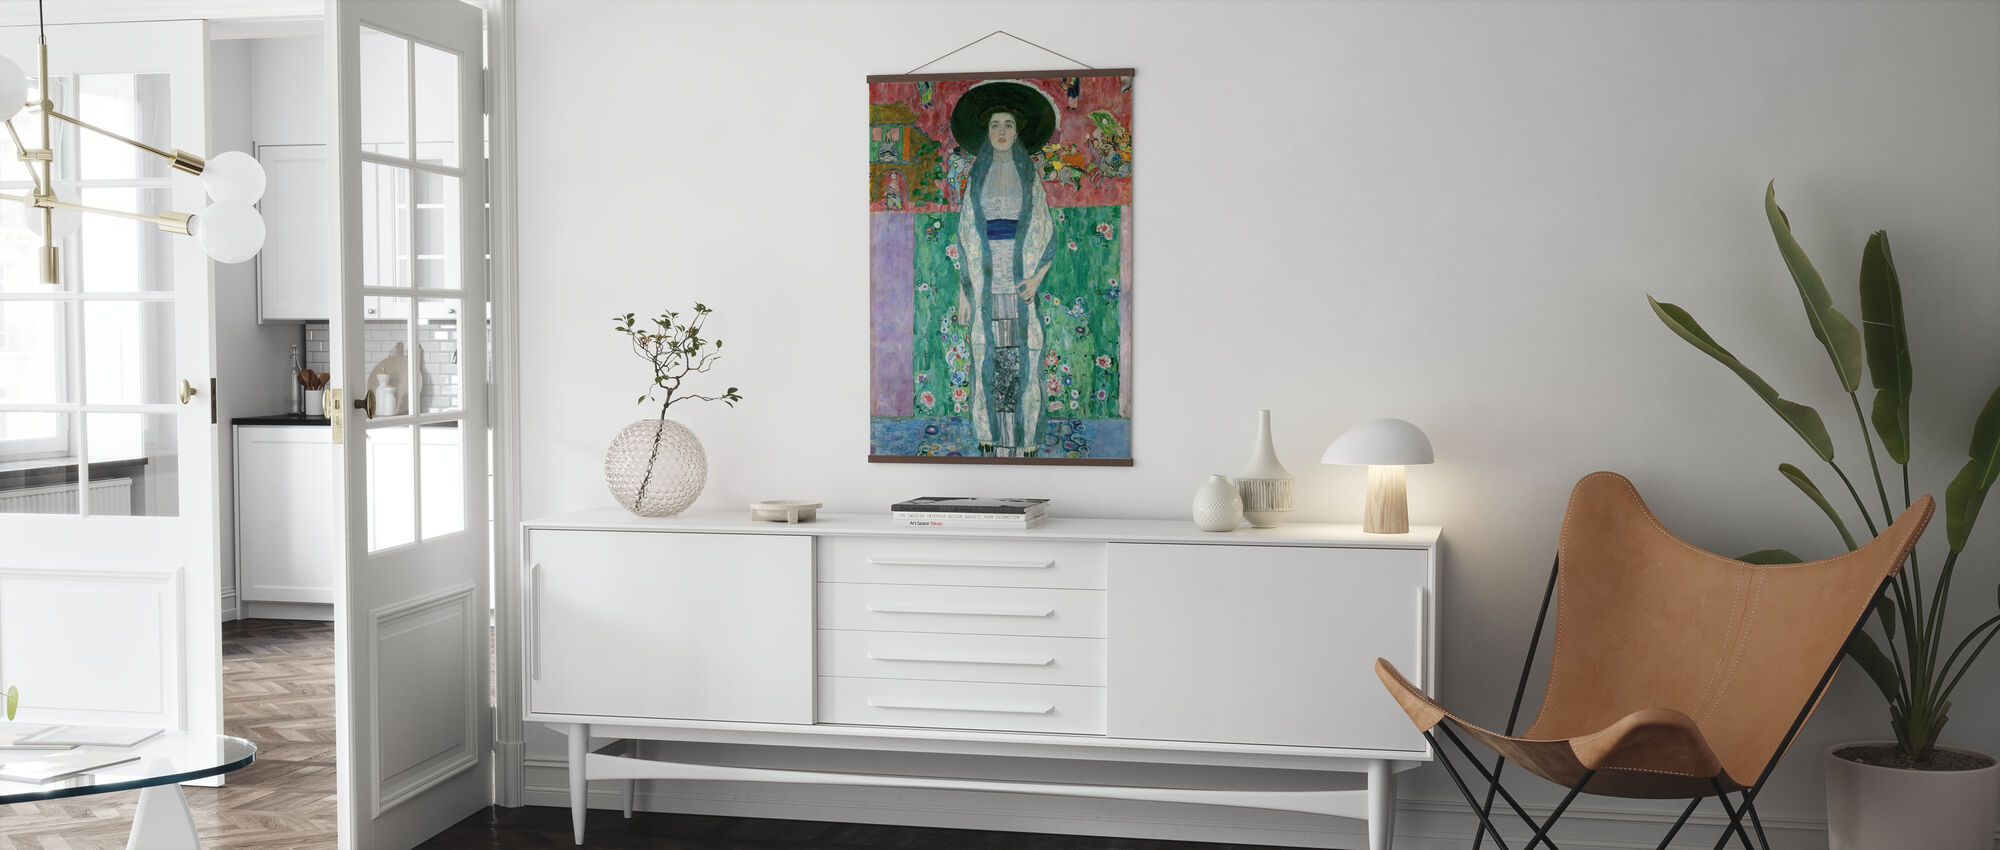 Portrait of Adele Bloch-Bauer - Gustav Klimt - Poster - Living Room